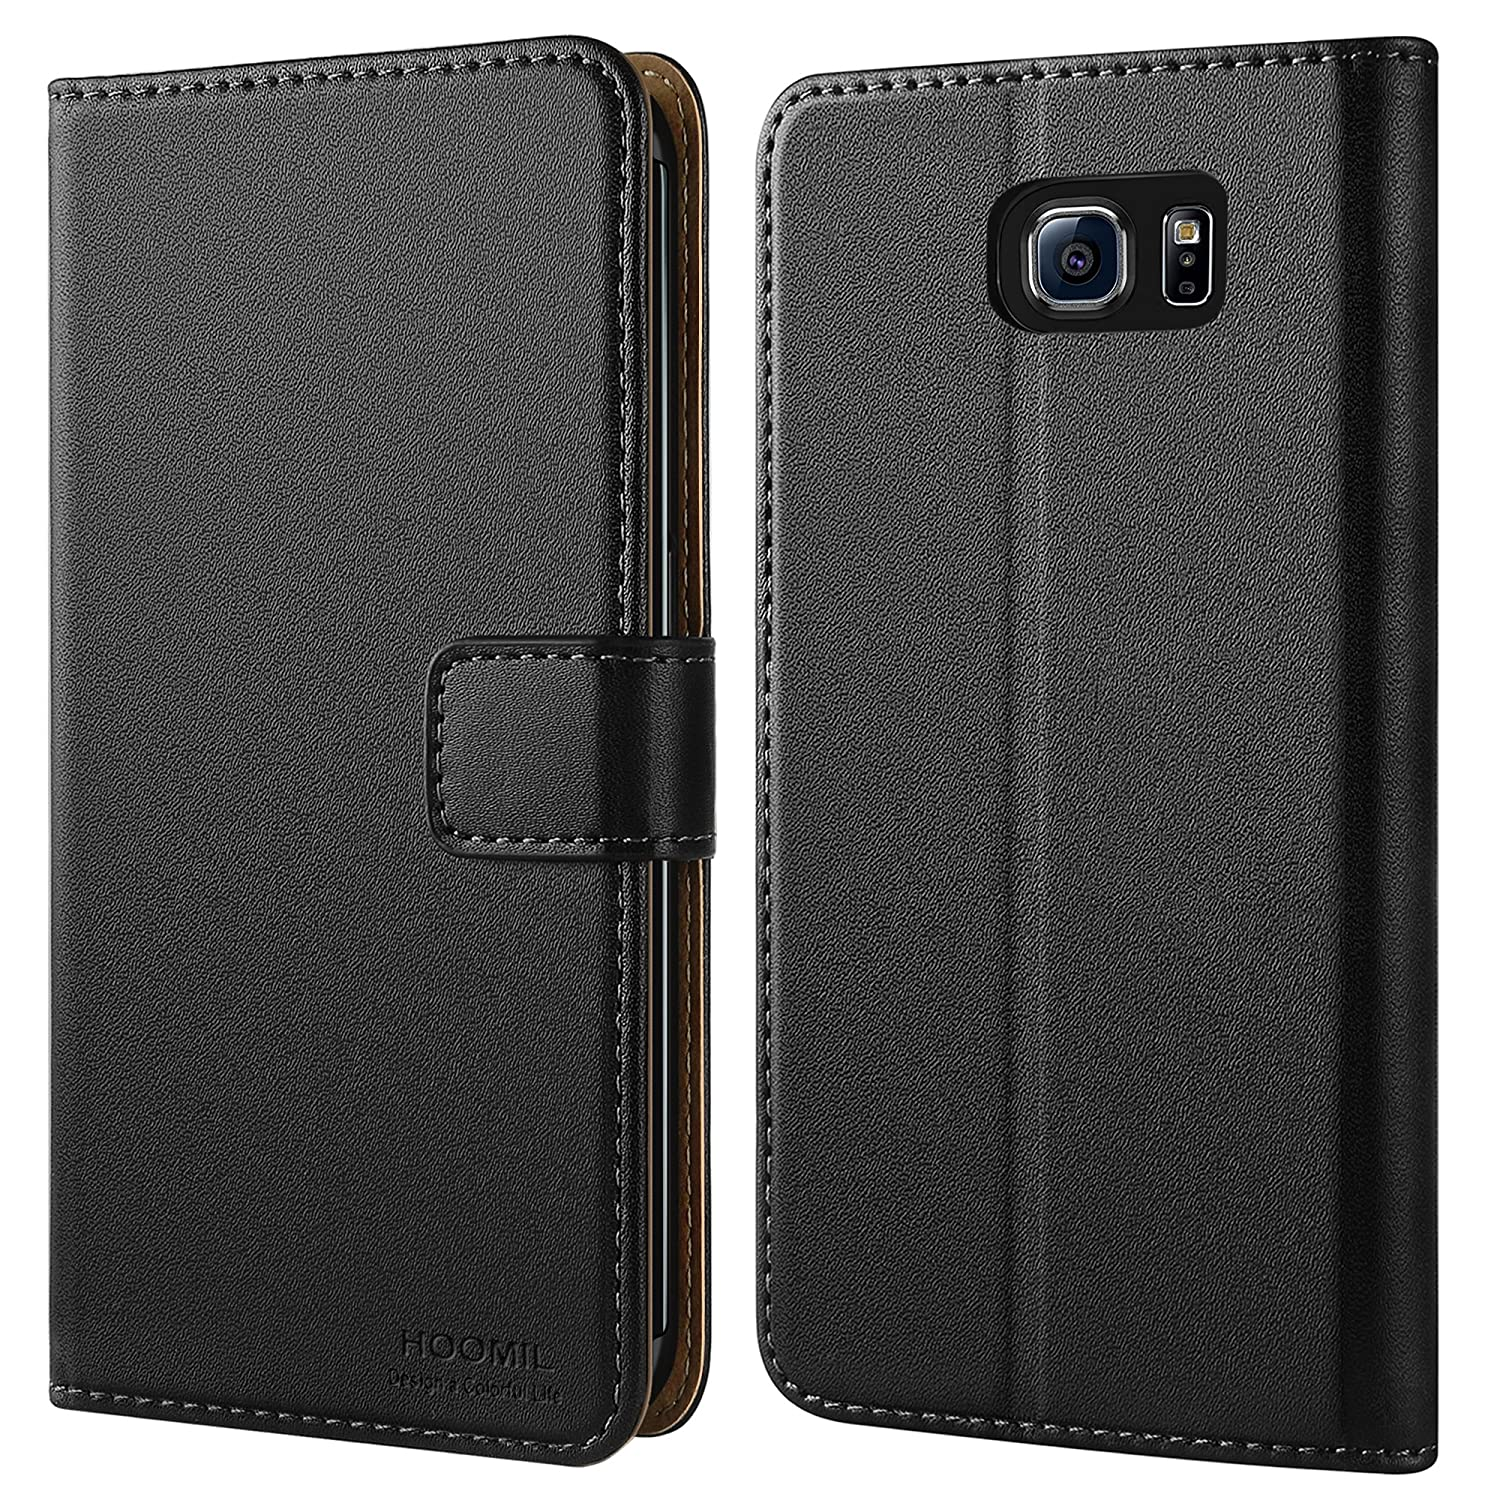 the latest f2847 e3cef HOOMIL Galaxy S6 Edge Case Premium Leather Case for Samsung Galaxy S6 Edge  Phone Cover (Black)